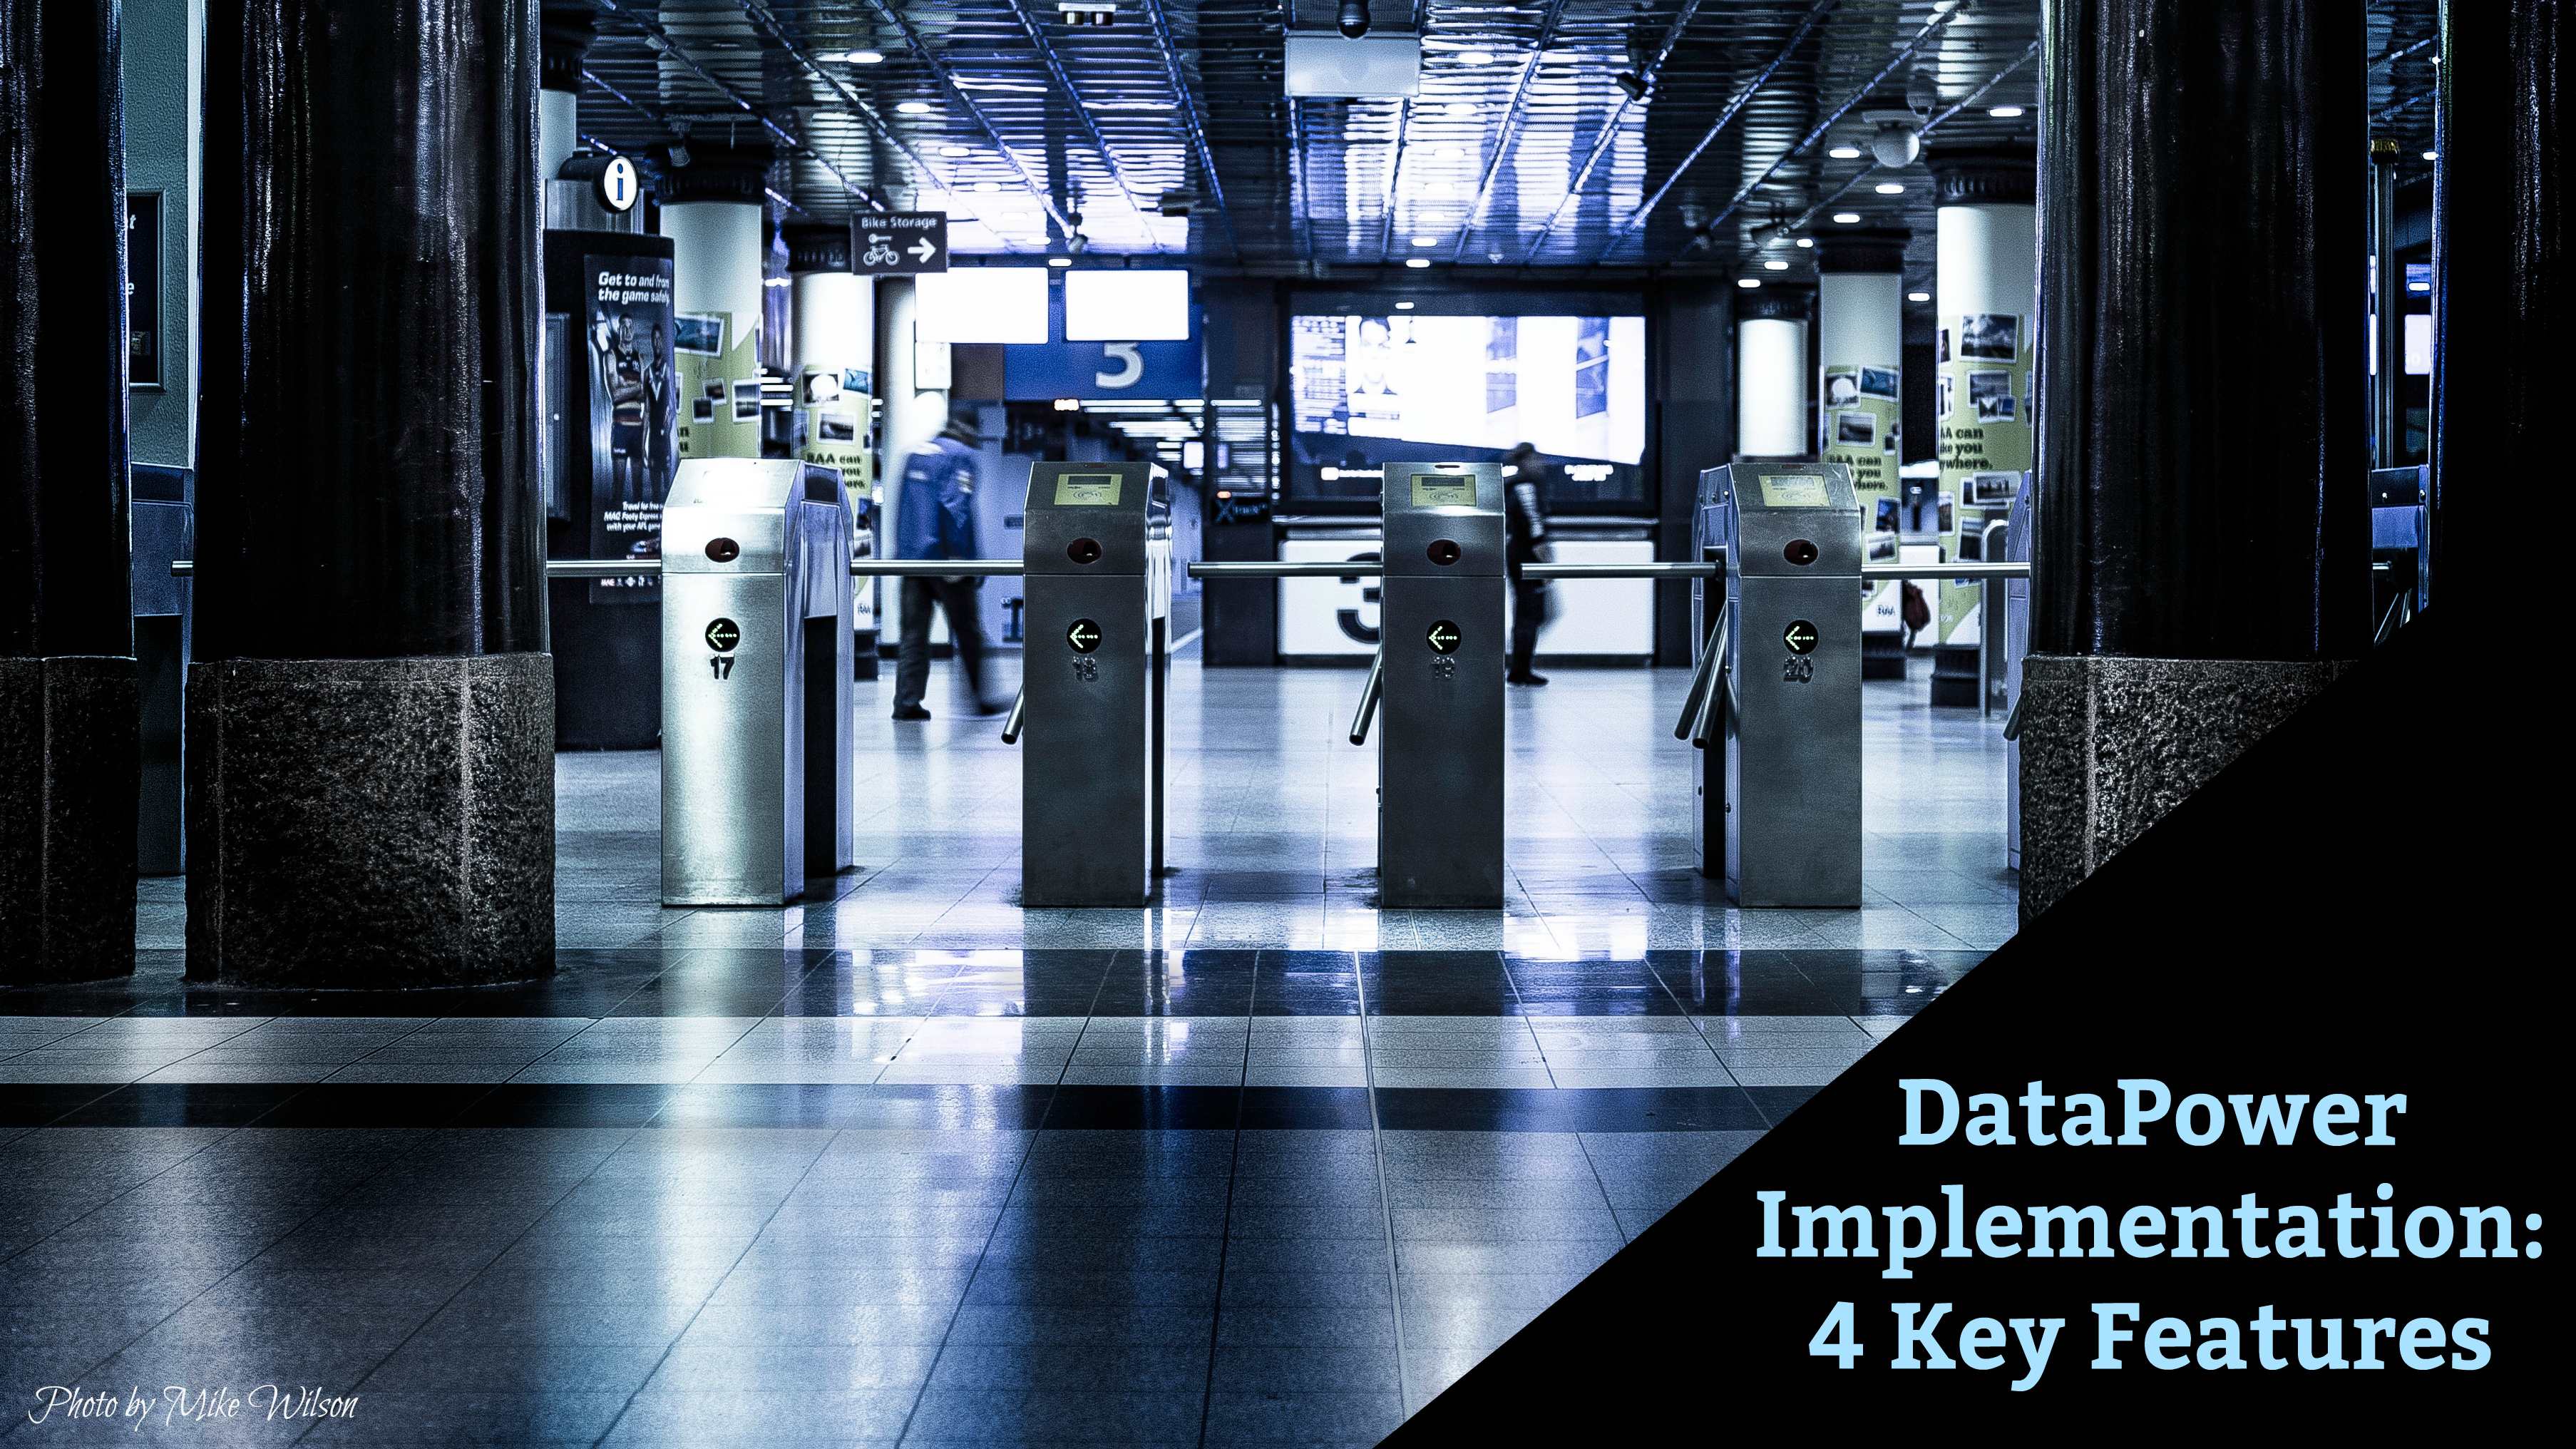 Does your DataPower Implementation Support These 4 Key